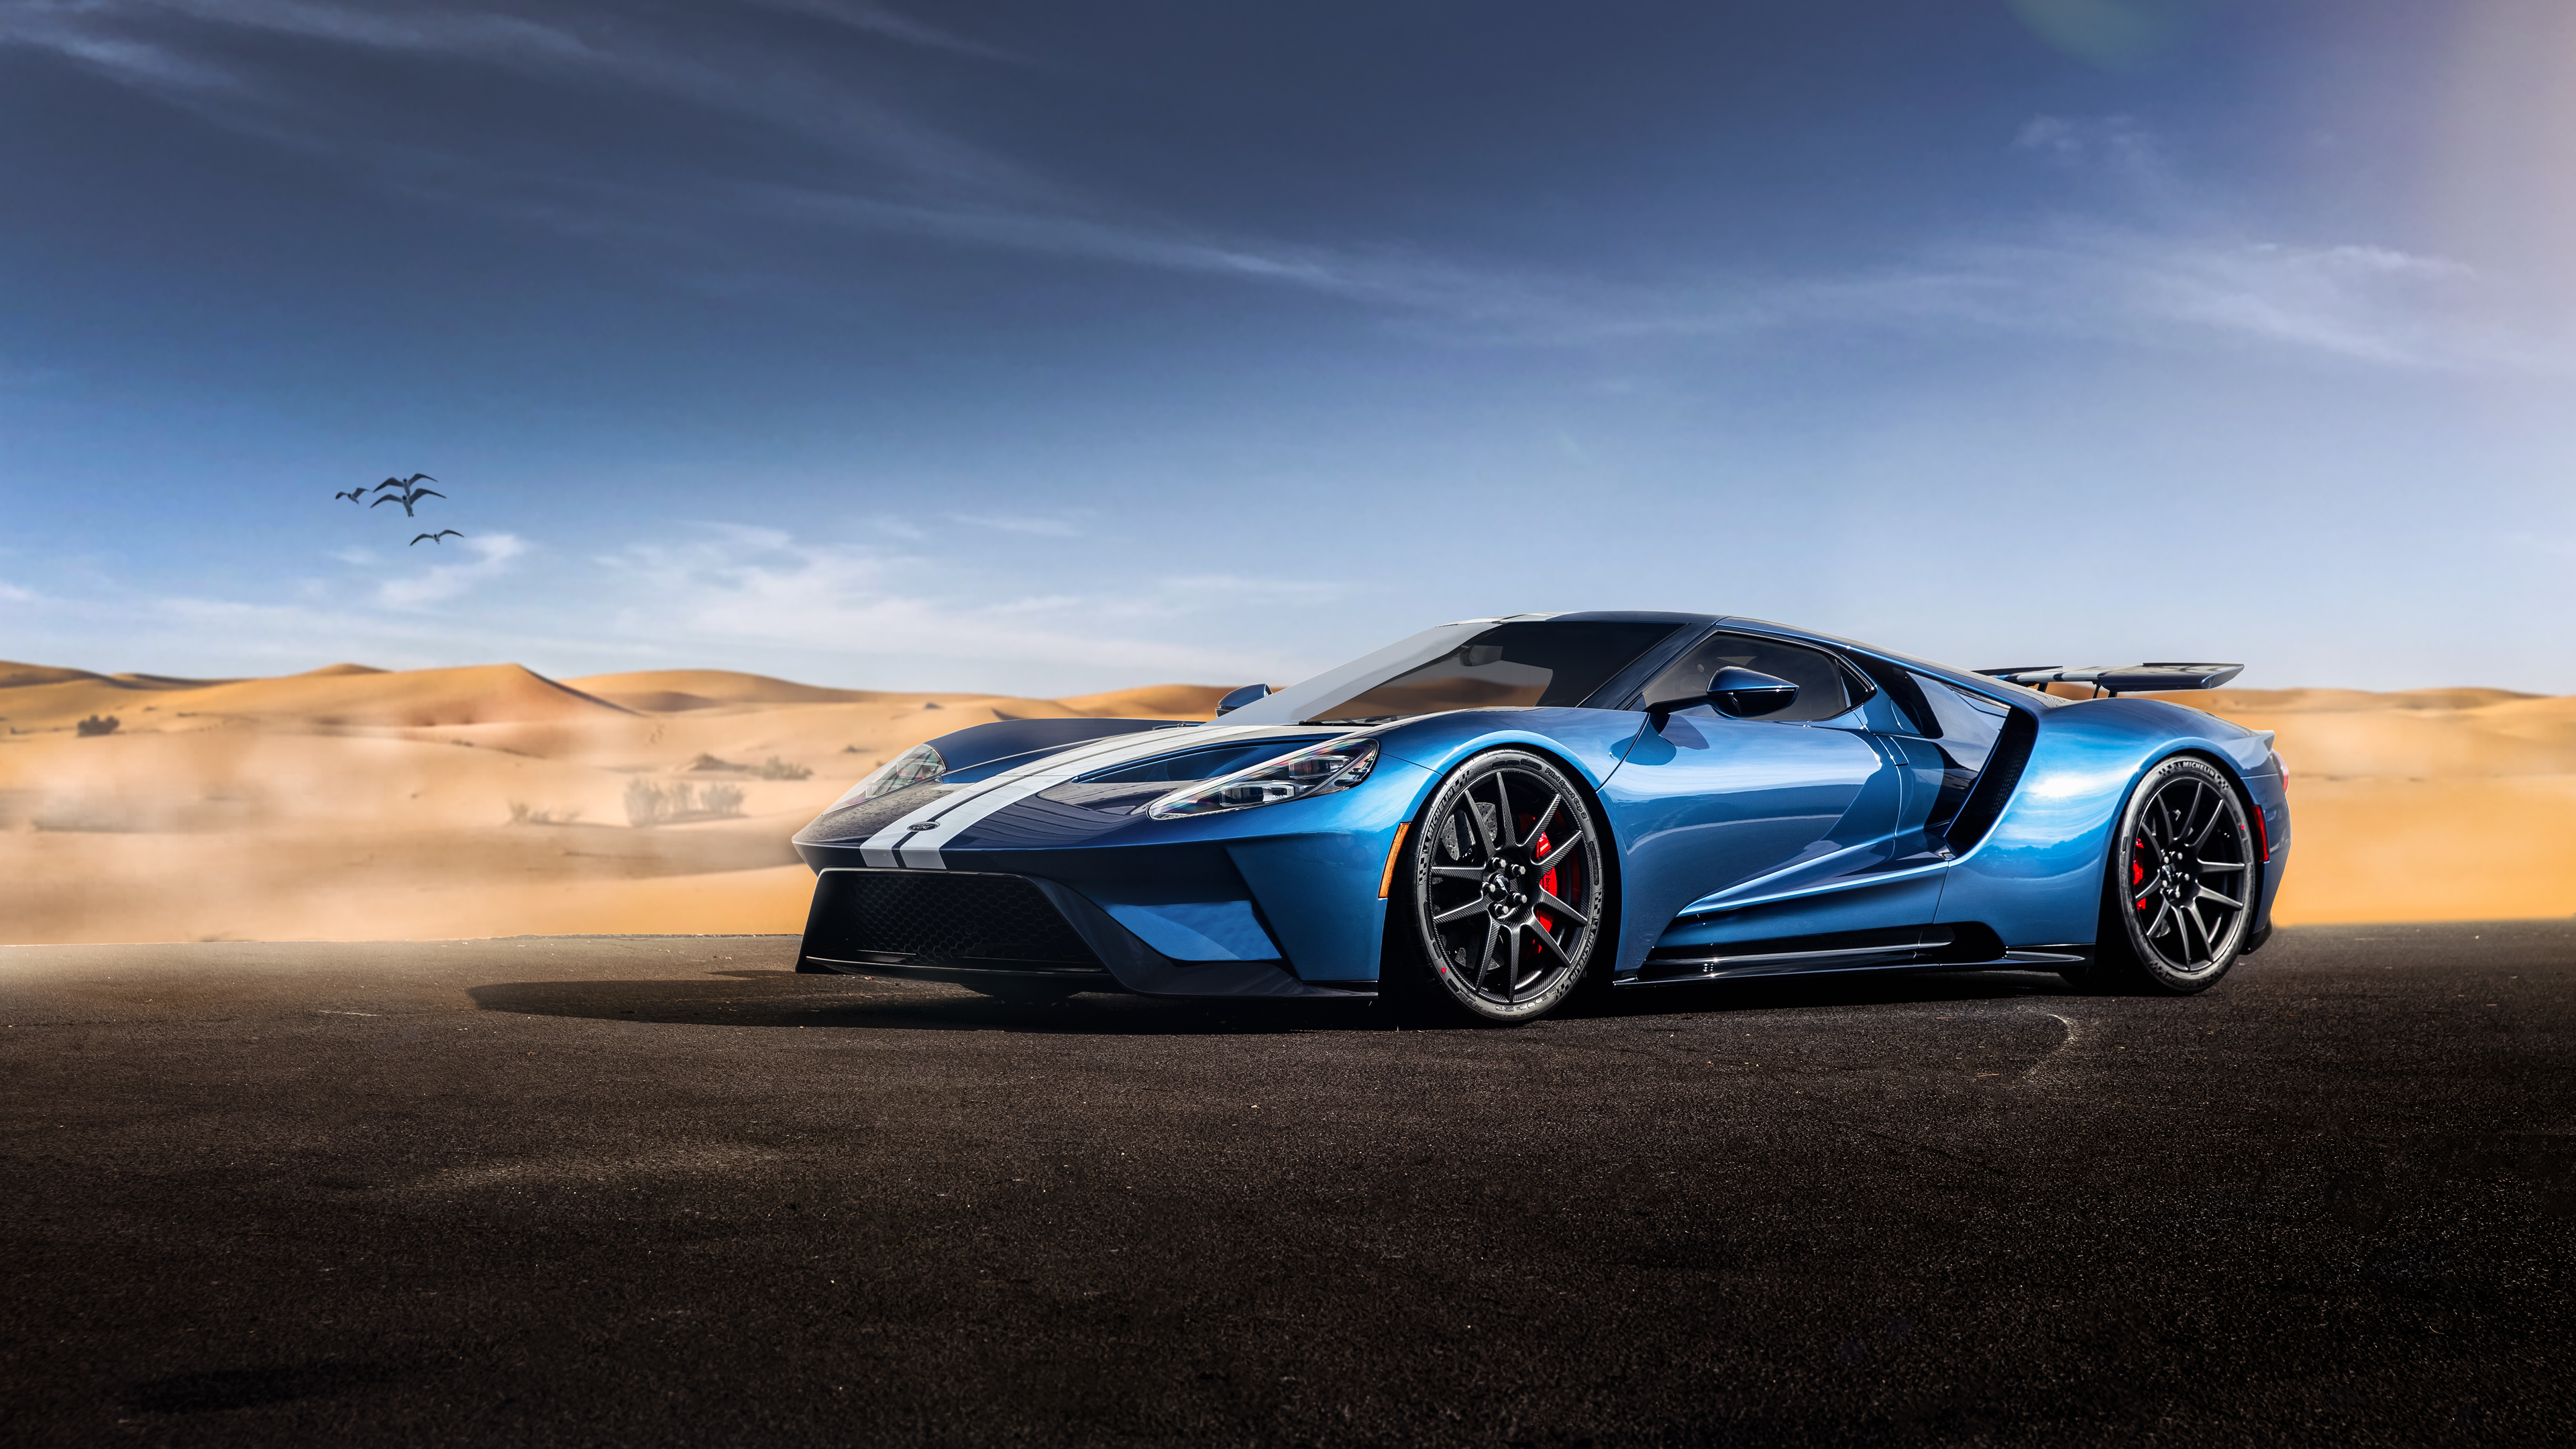 ford gt 2019 1565054964 - Ford Gt  2019 - hd-wallpapers, ford wallpapers, ford gt wallpapers, 5k wallpapers, 4k-wallpapers, 2018 cars wallpapers